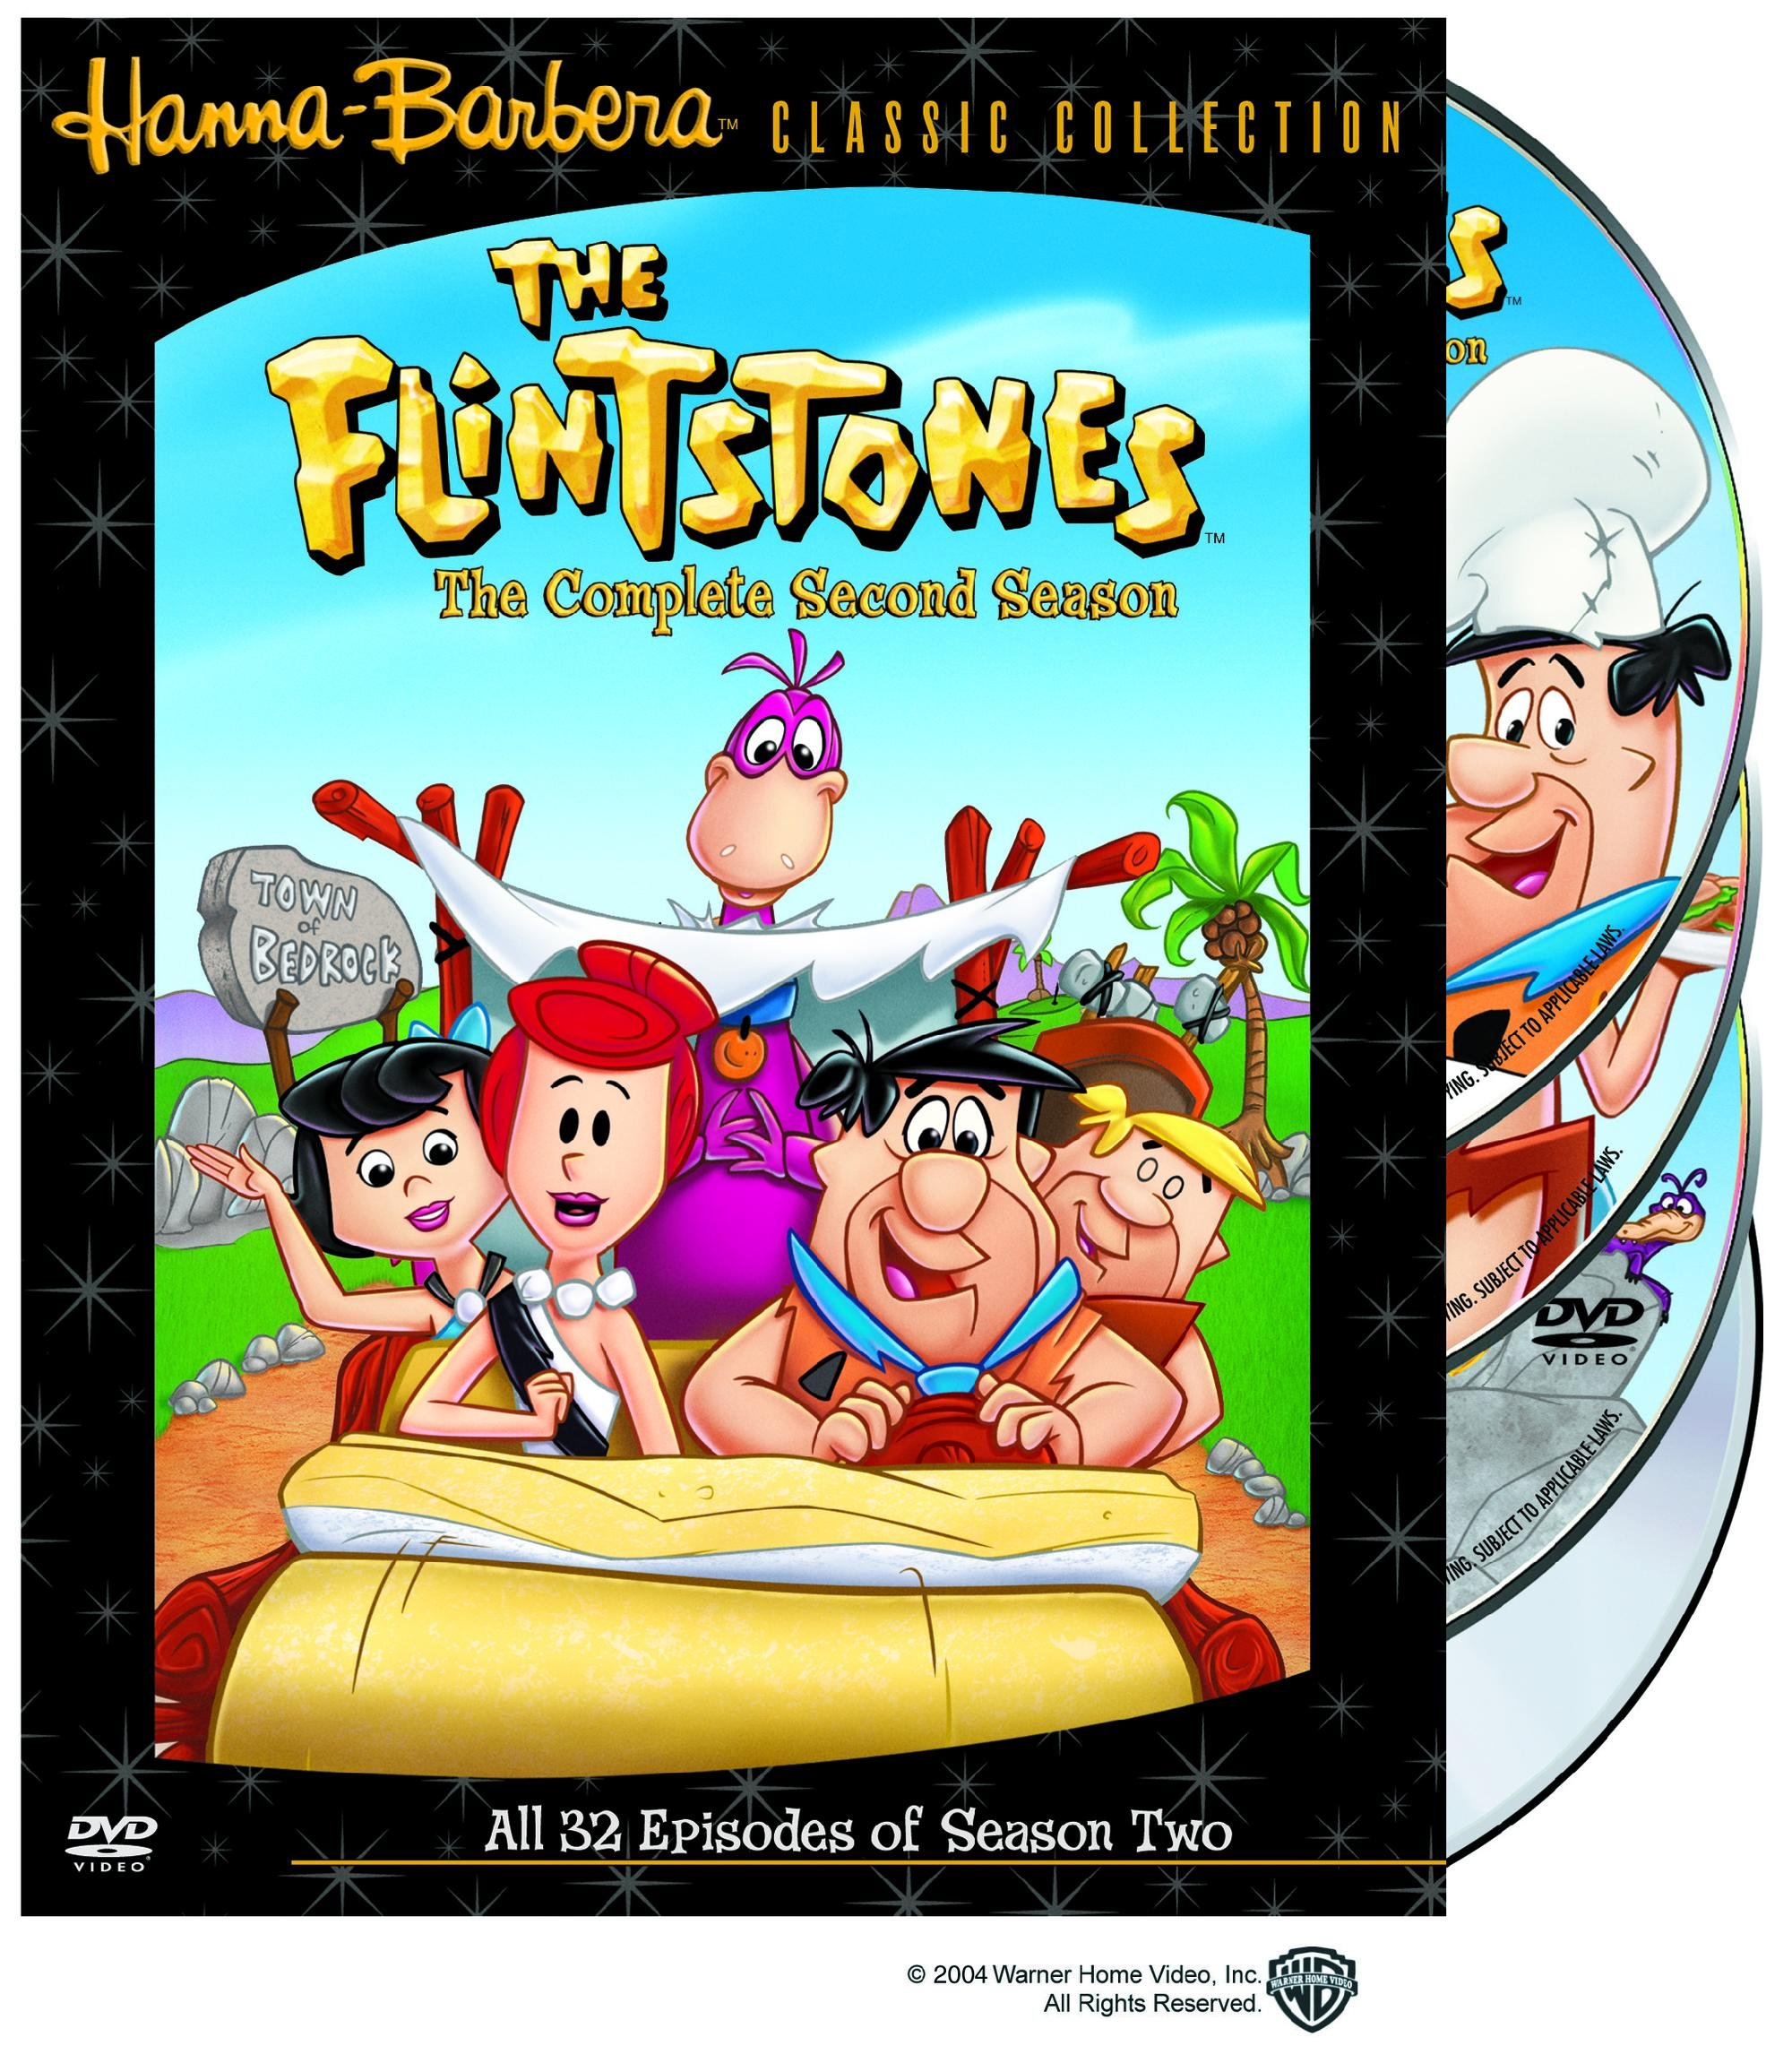 The Flintstones - The Complete Second Season by Warner Brothers